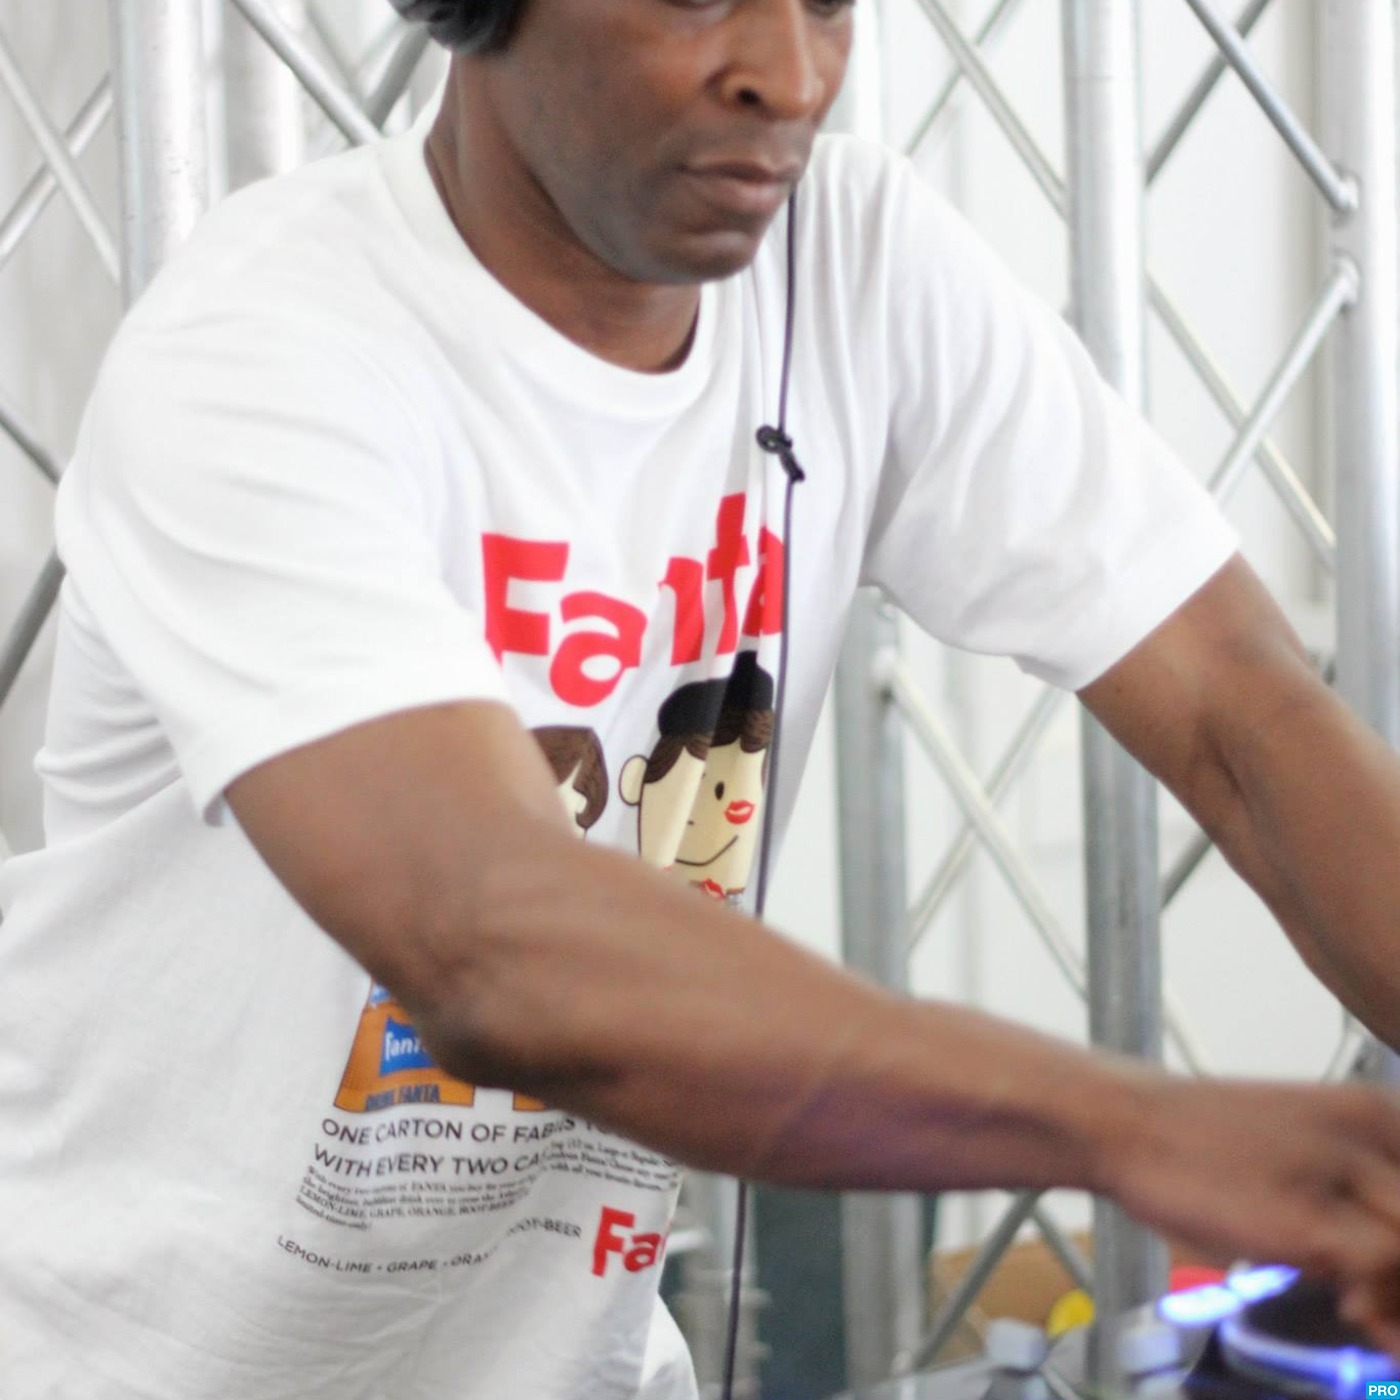 Colin Williams presents the 50 Shades of House show, Monday nights 10pm-12 GMT on www.d3ep.com